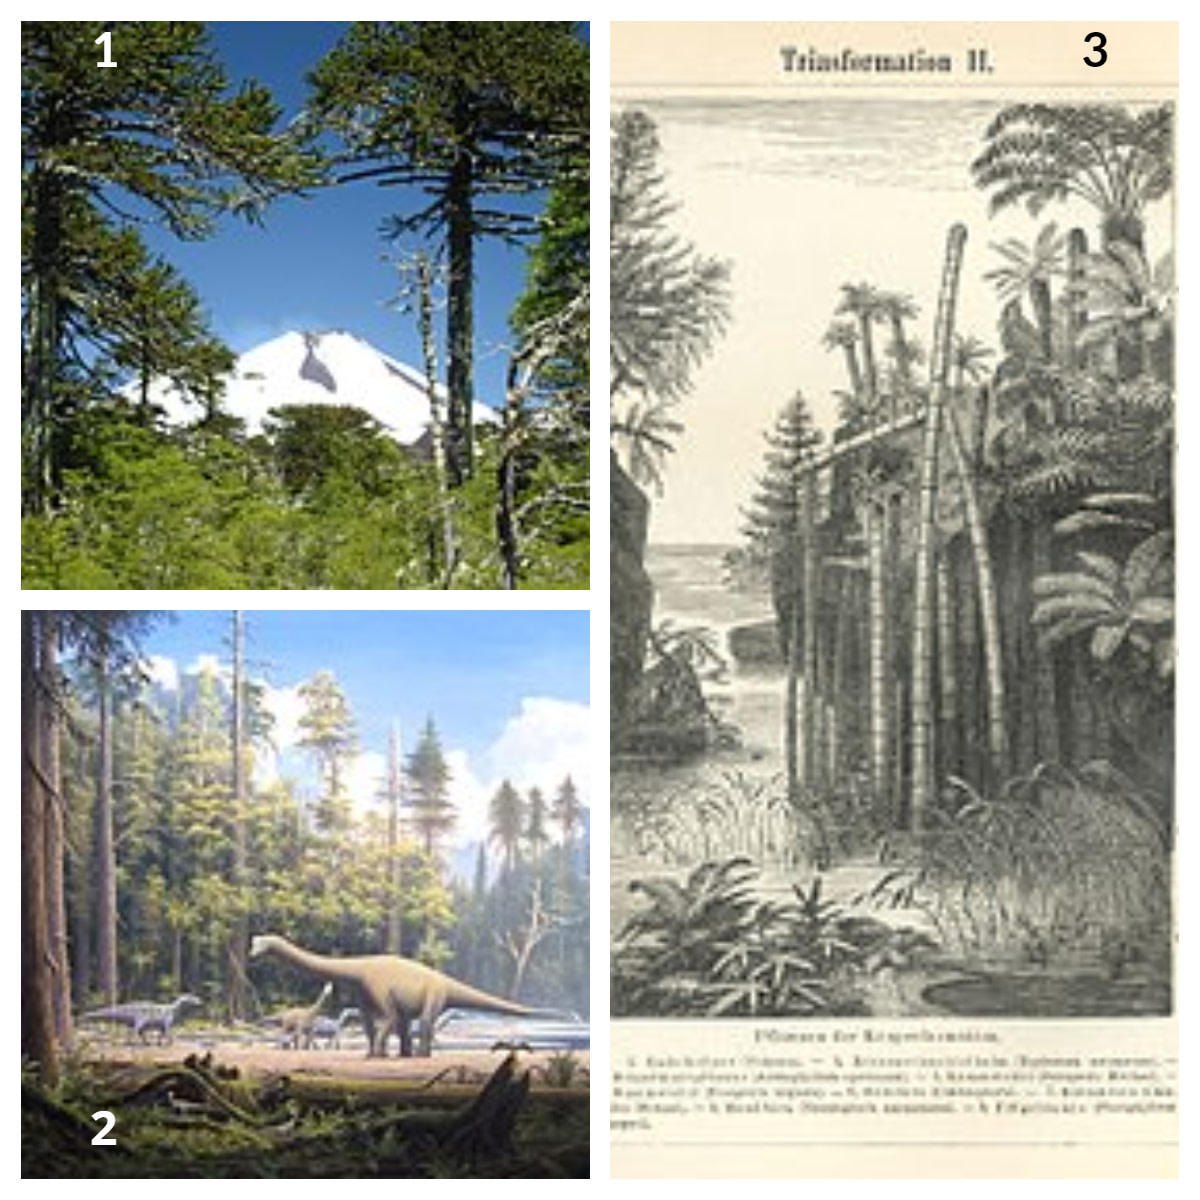 1.  Jurassic Period,  2.  Cretaceous Period - Typical Conifers 3.  Triassic Period - Typical Flora